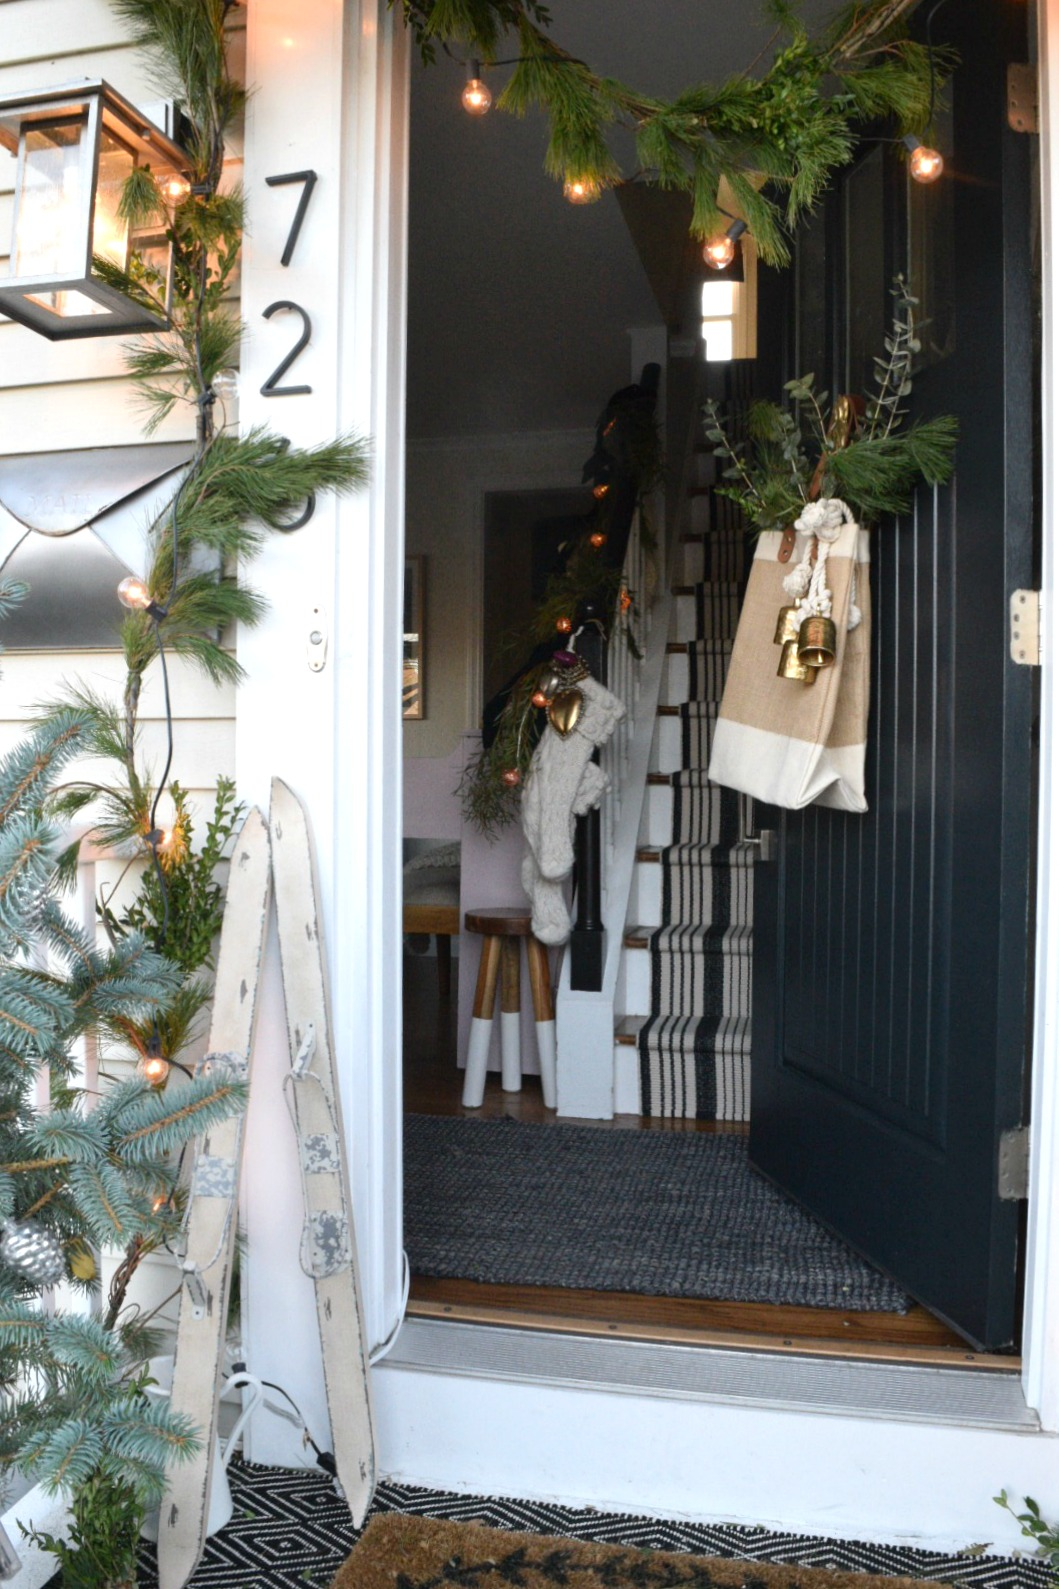 Christmas Ideas for Small Spaces- Small House Ideas- Cape Style Home